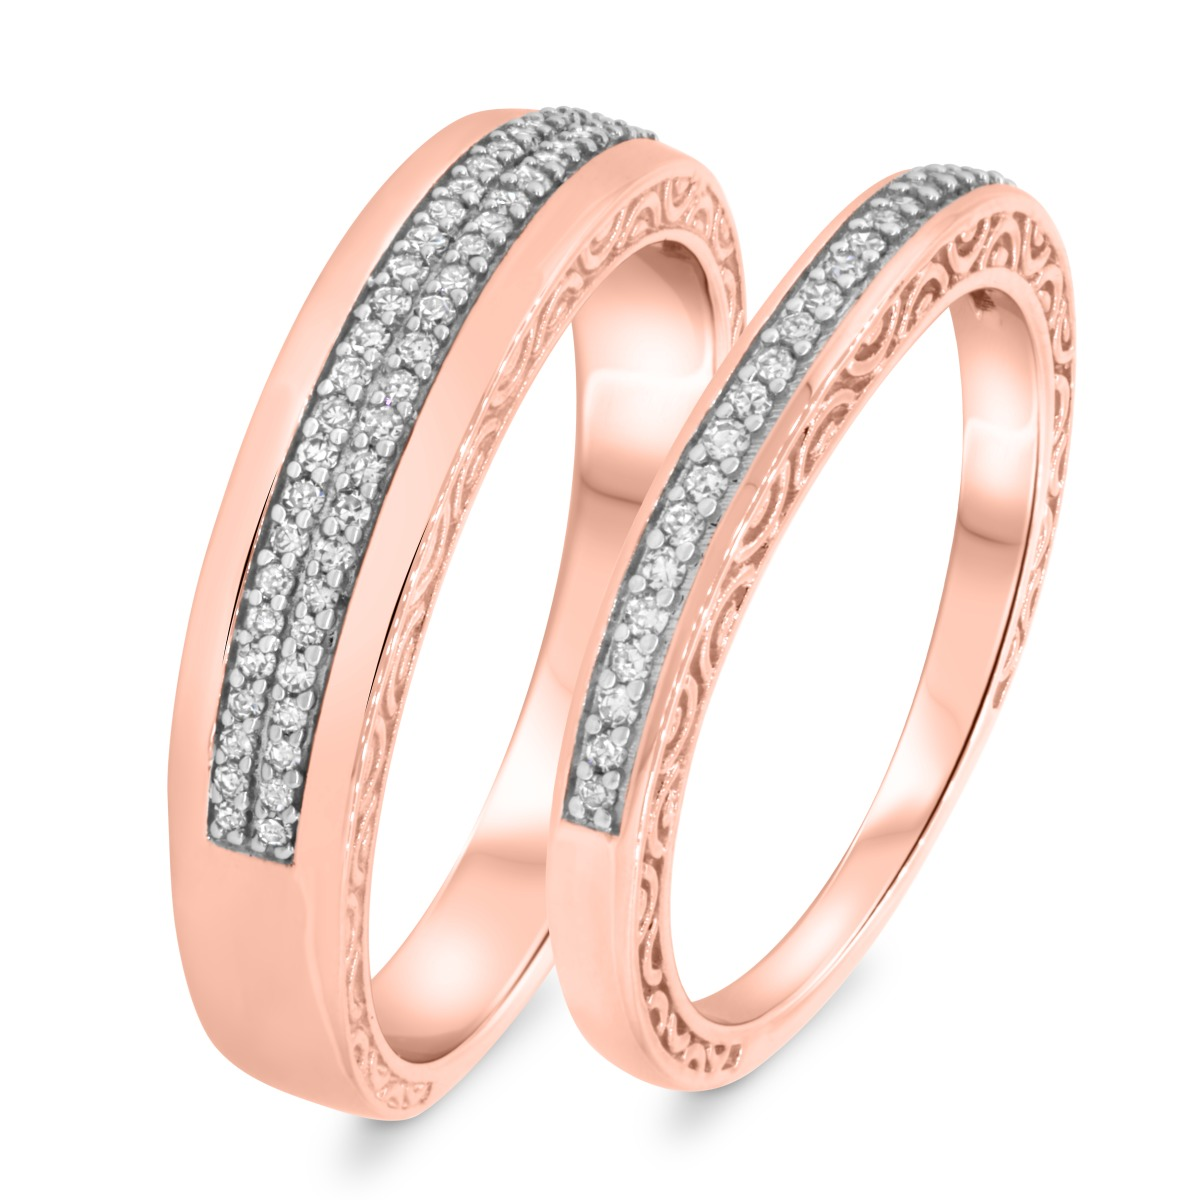 1/3 Carat T.W. Diamond Matching Wedding Band Set 14K Rose Gold